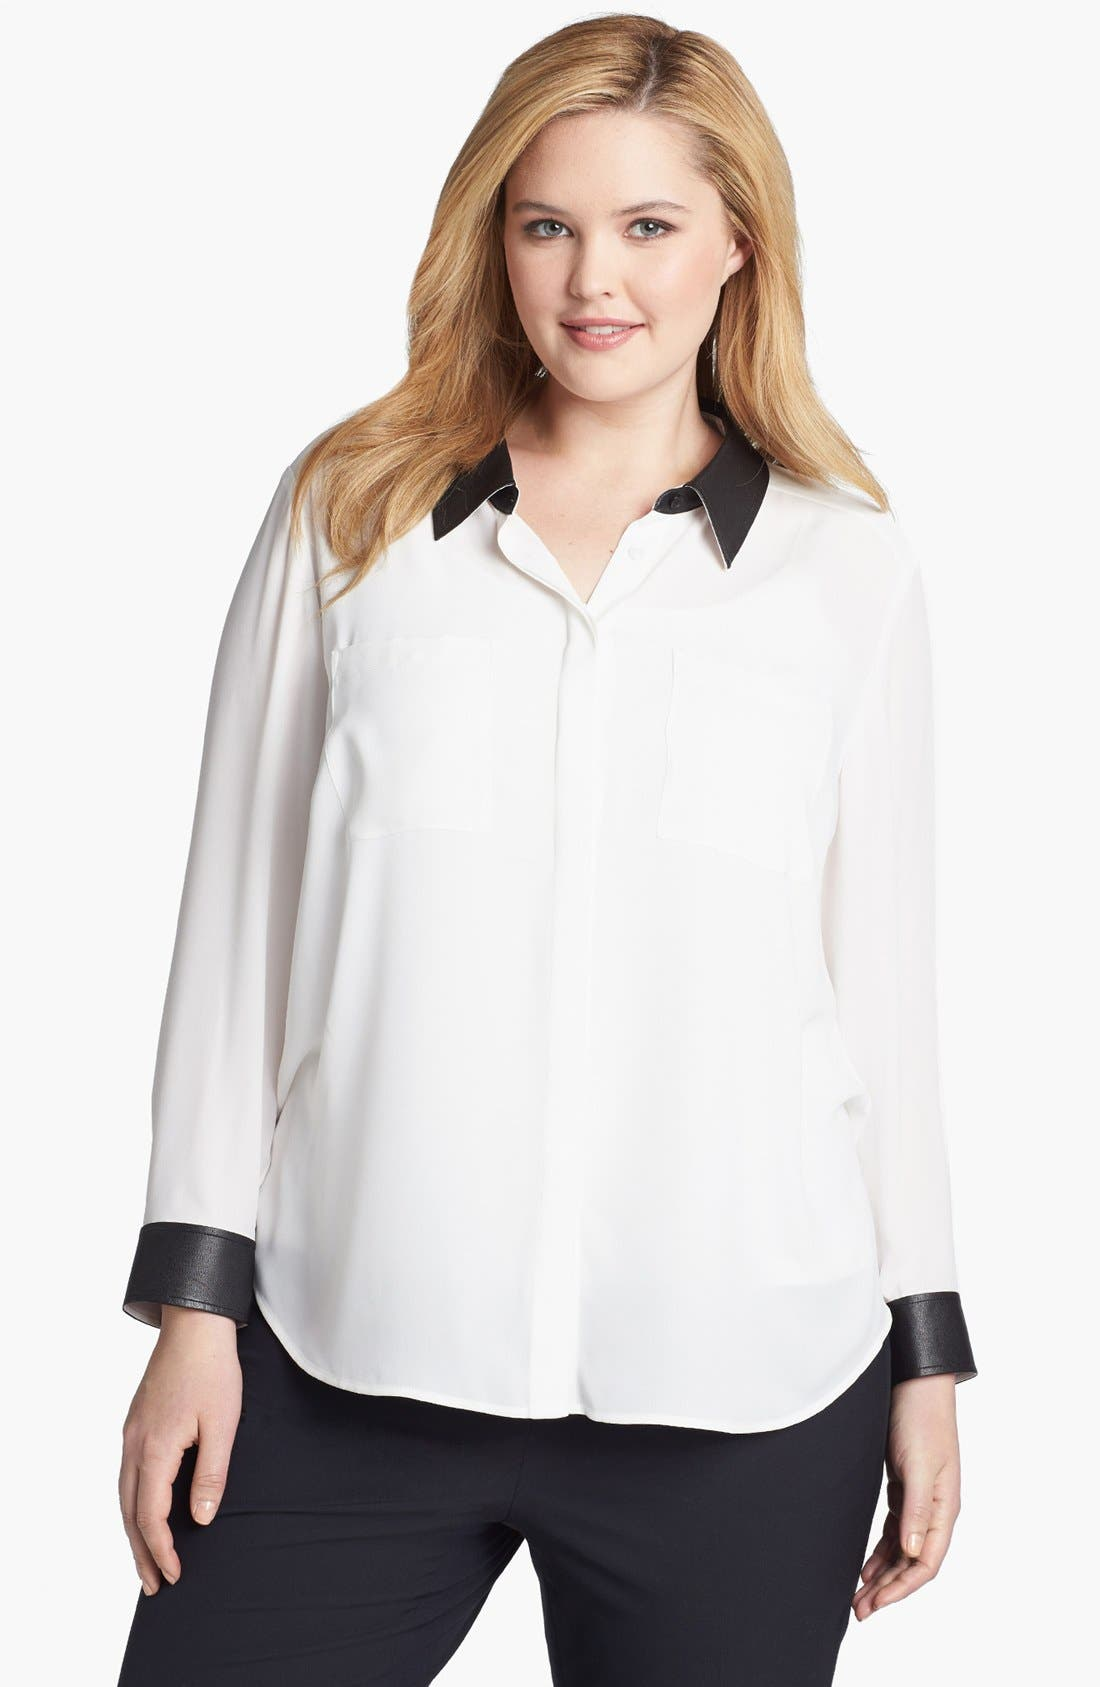 Alternate Image 1 Selected - Halogen® Faux Leather Trim Blouse (Plus Size) (Online Only)